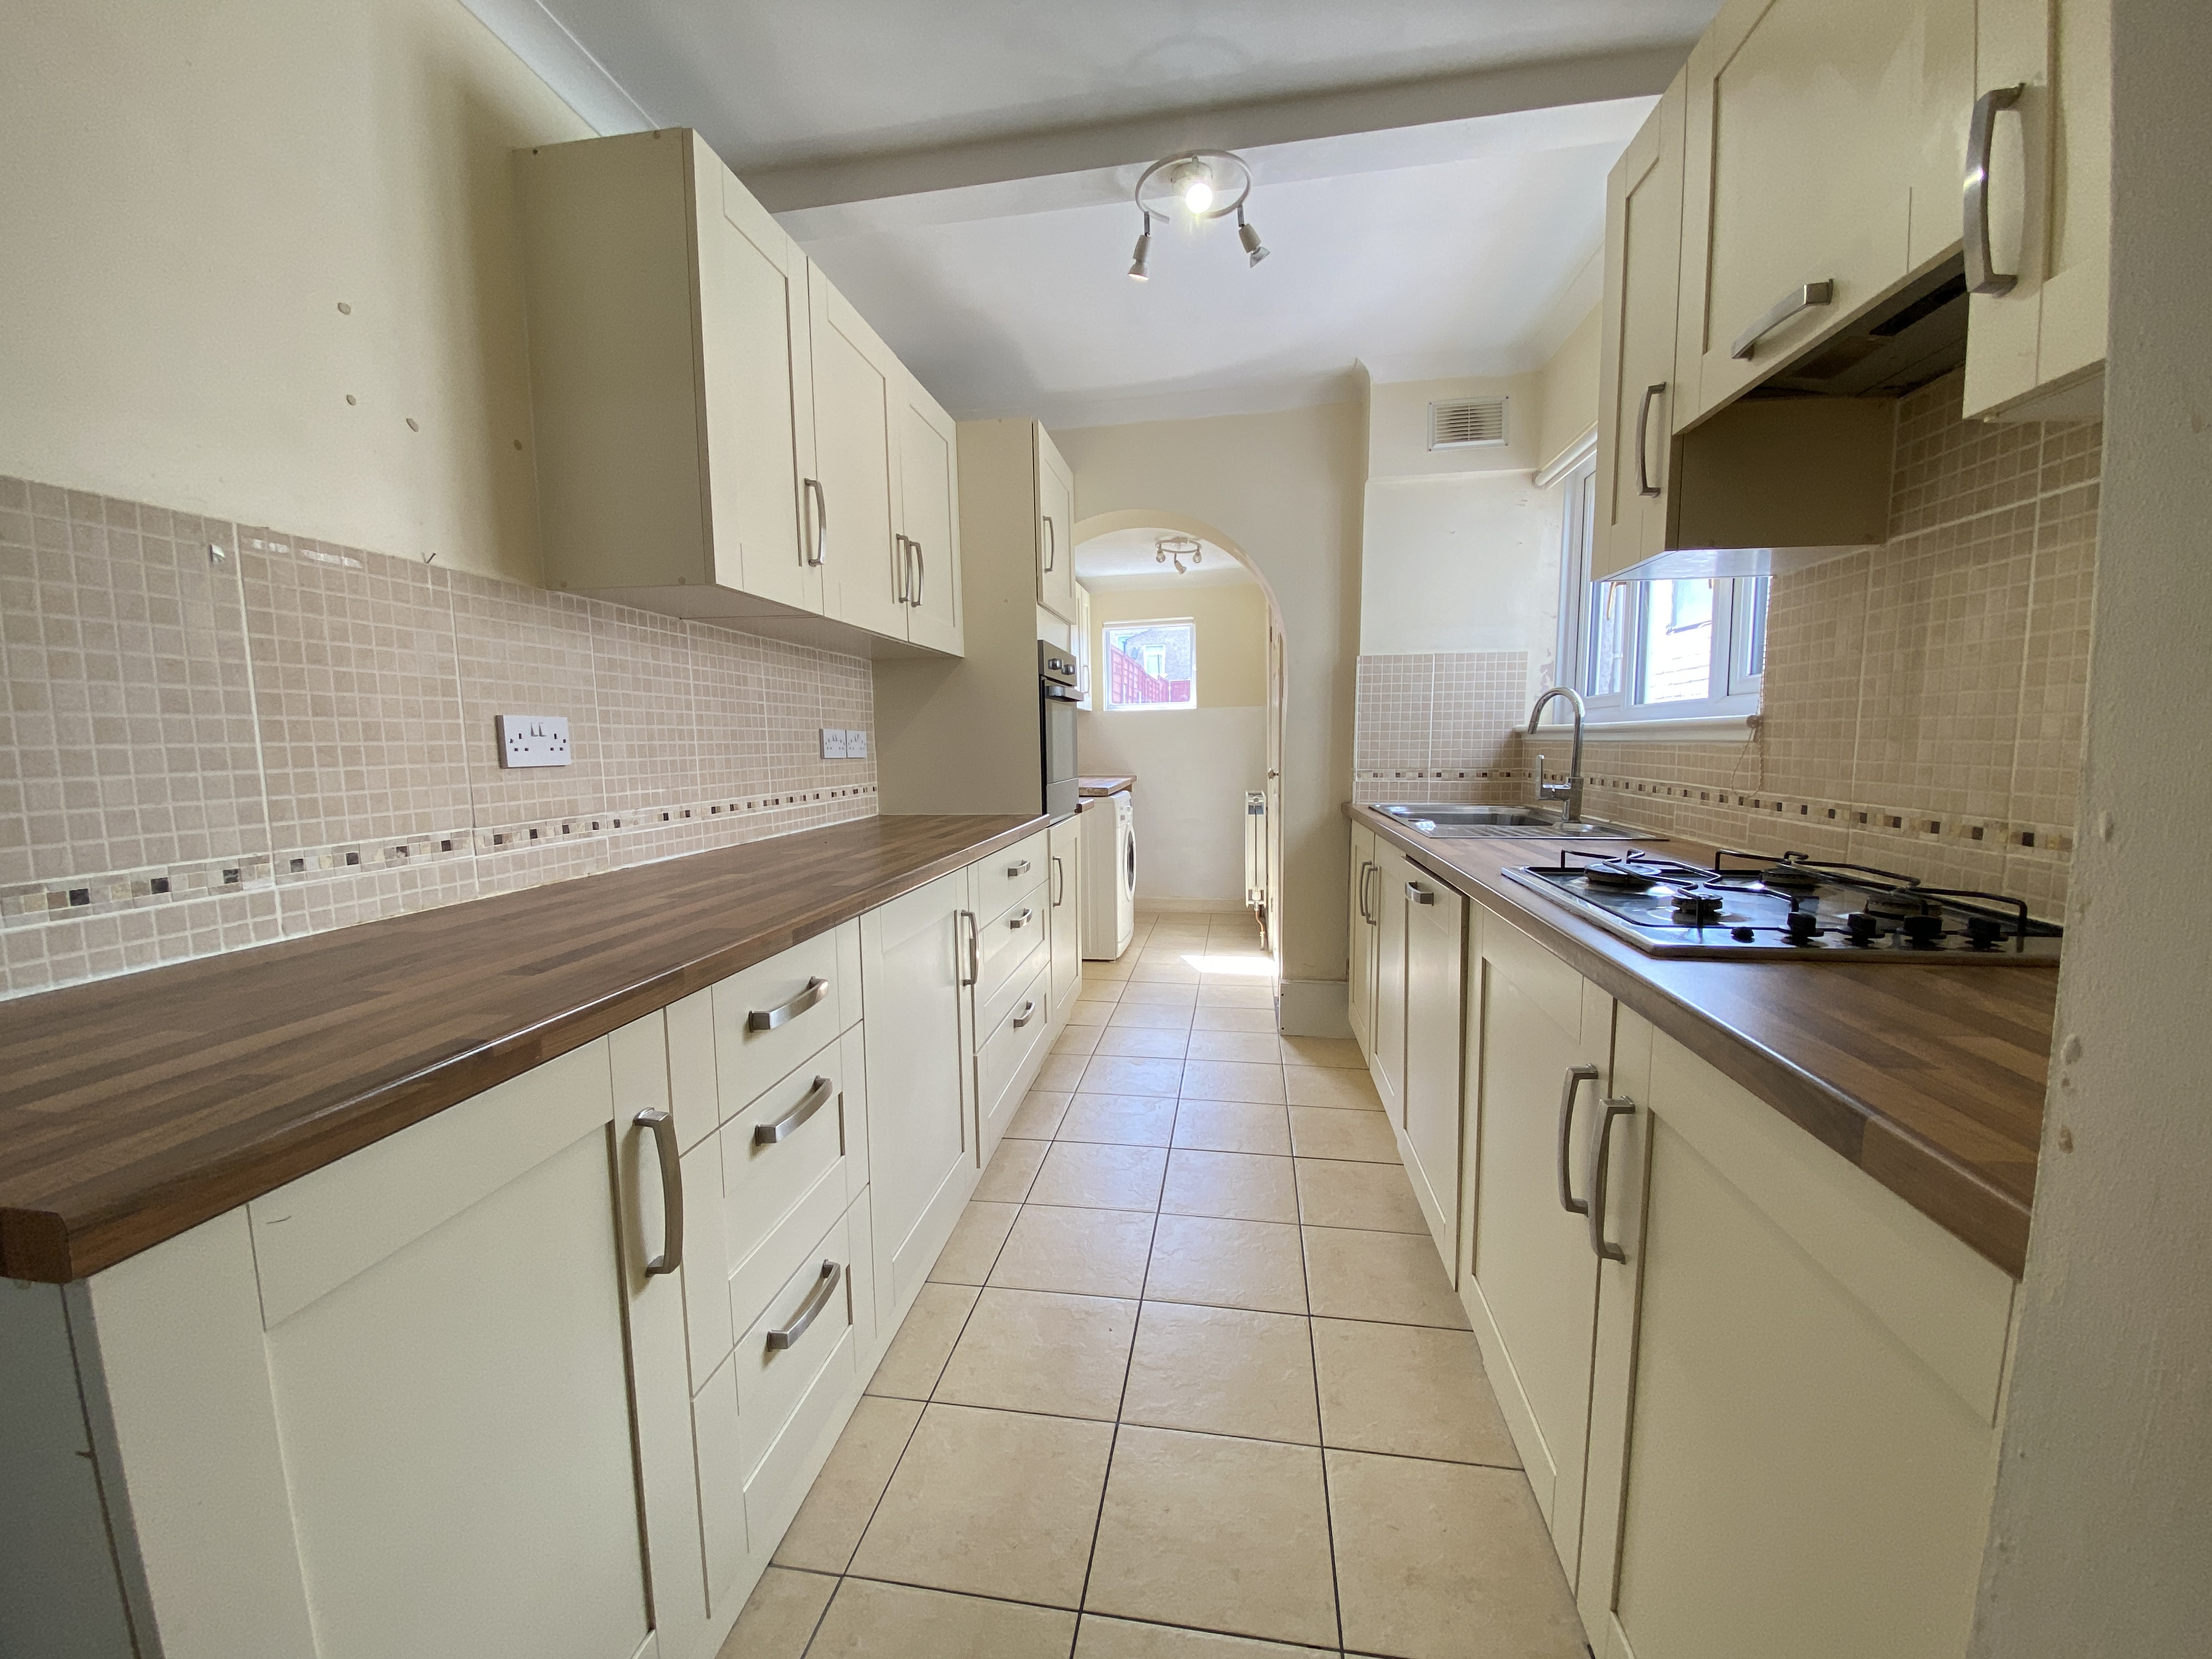 3 bed terraced house to rent in Chaucer Road, Gillingham, ME7